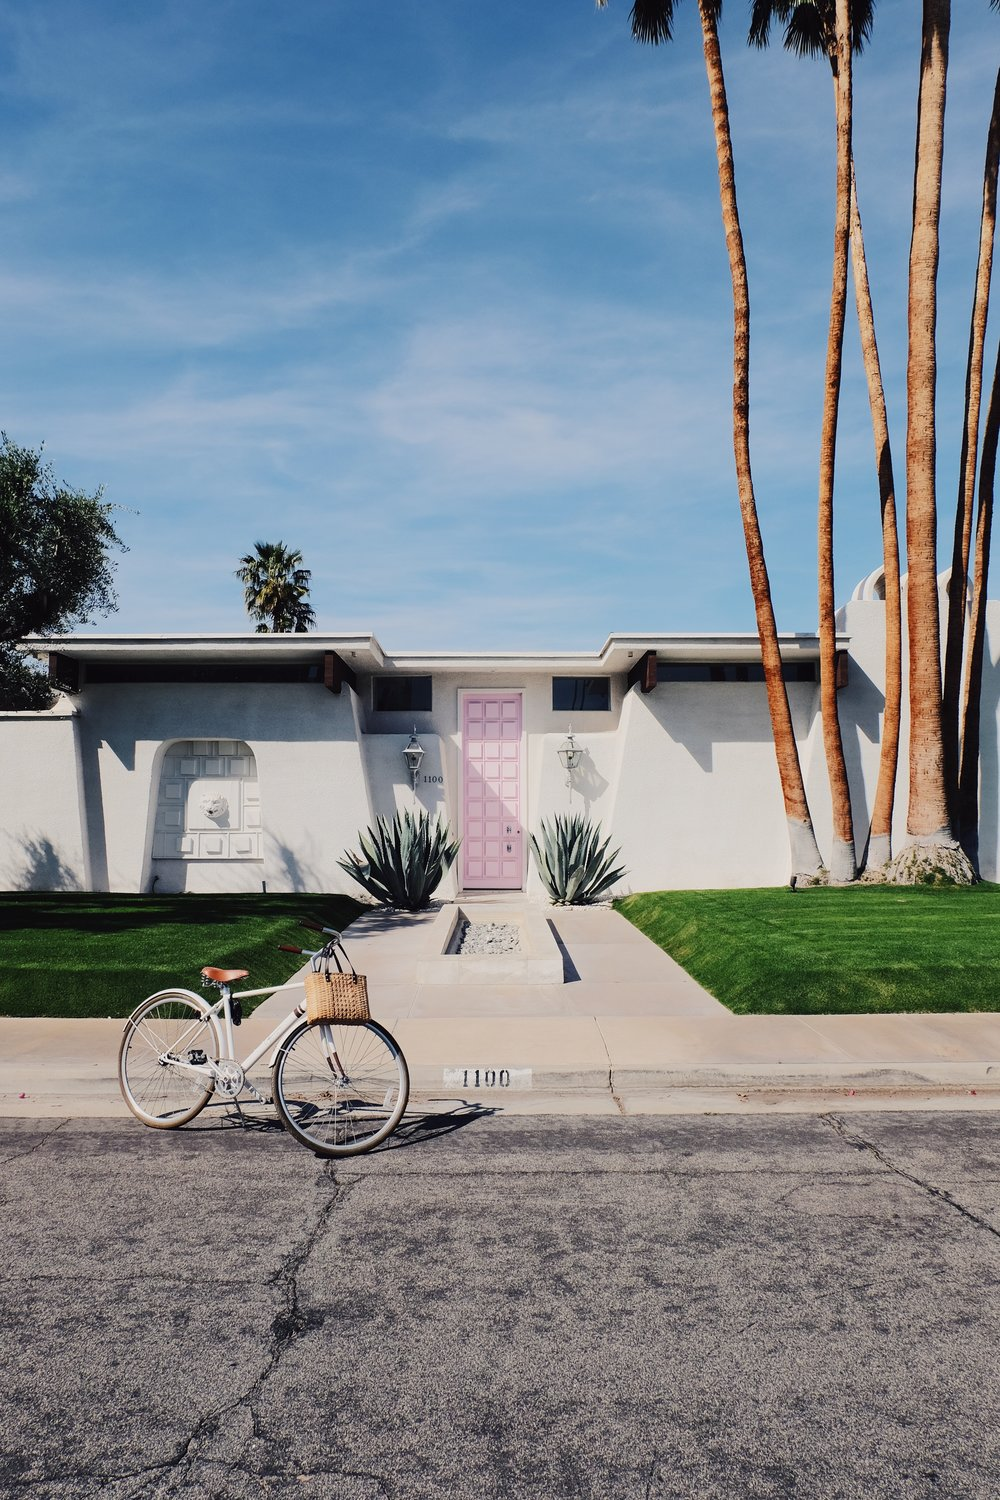 The Pink Door,Palm Springs Travel Guide